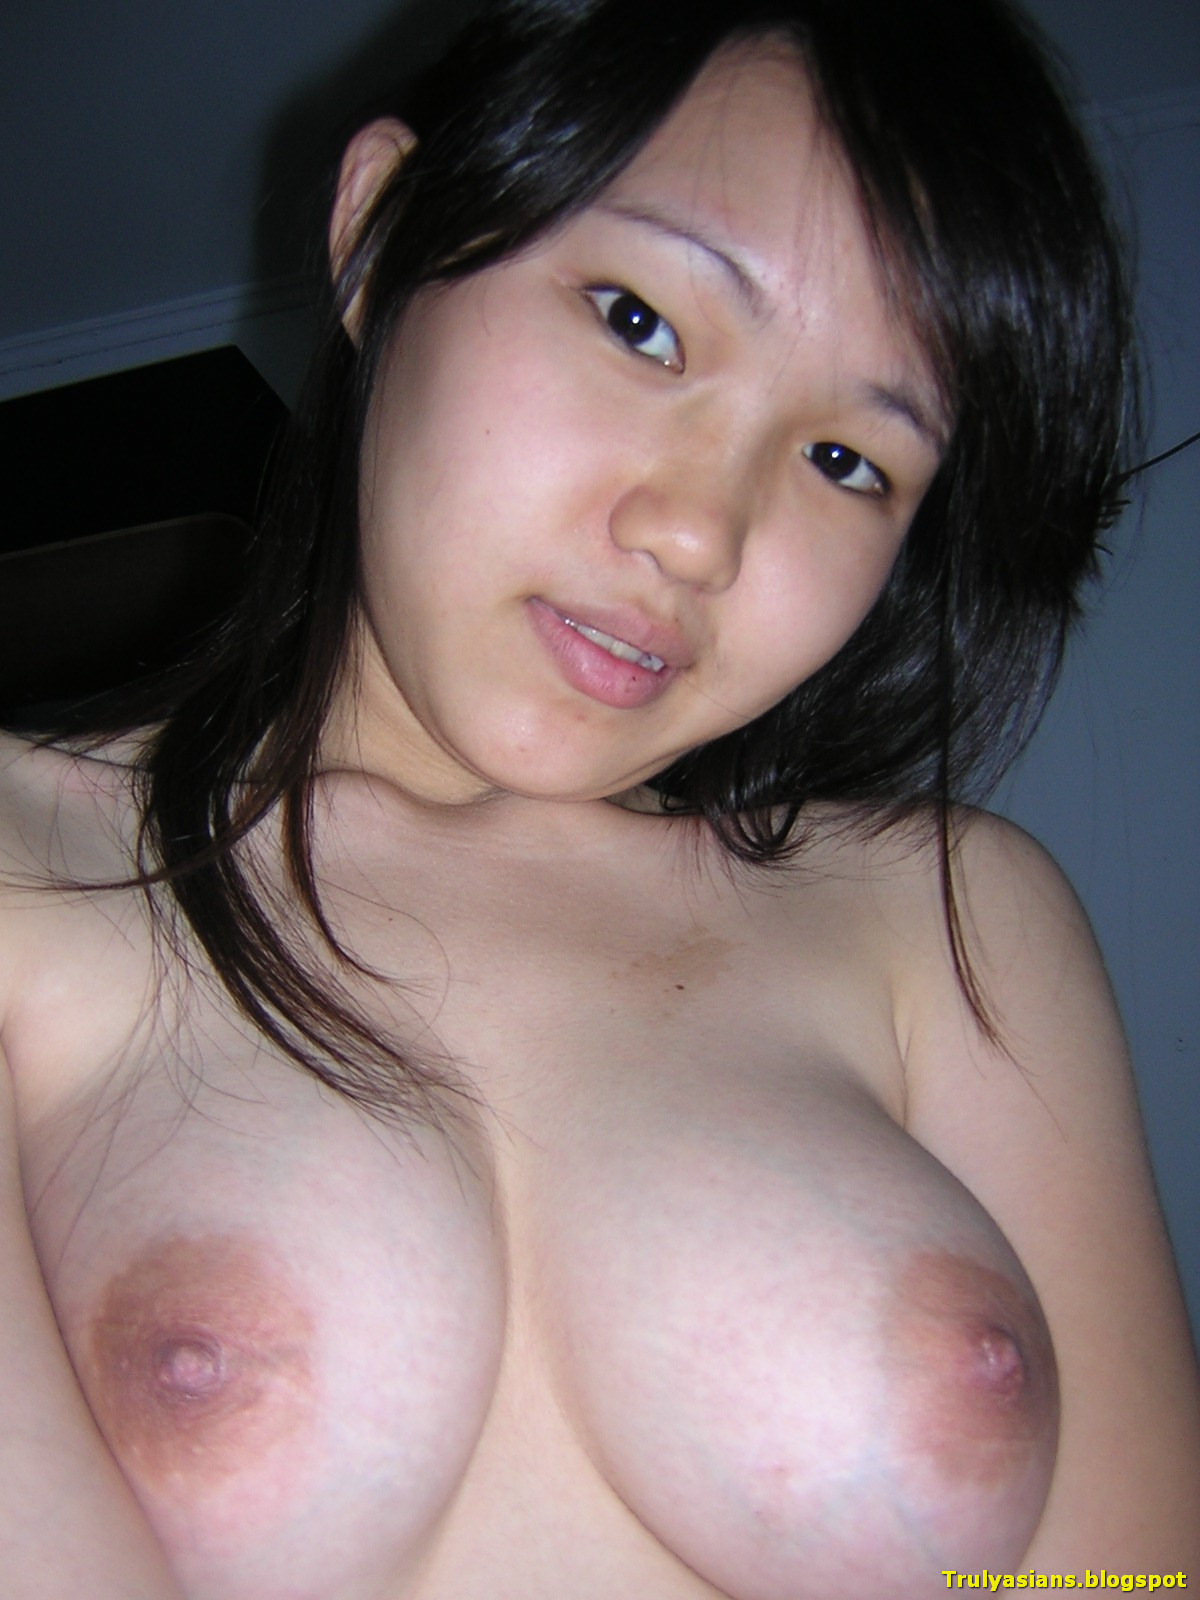 Young Looking Girls Naked